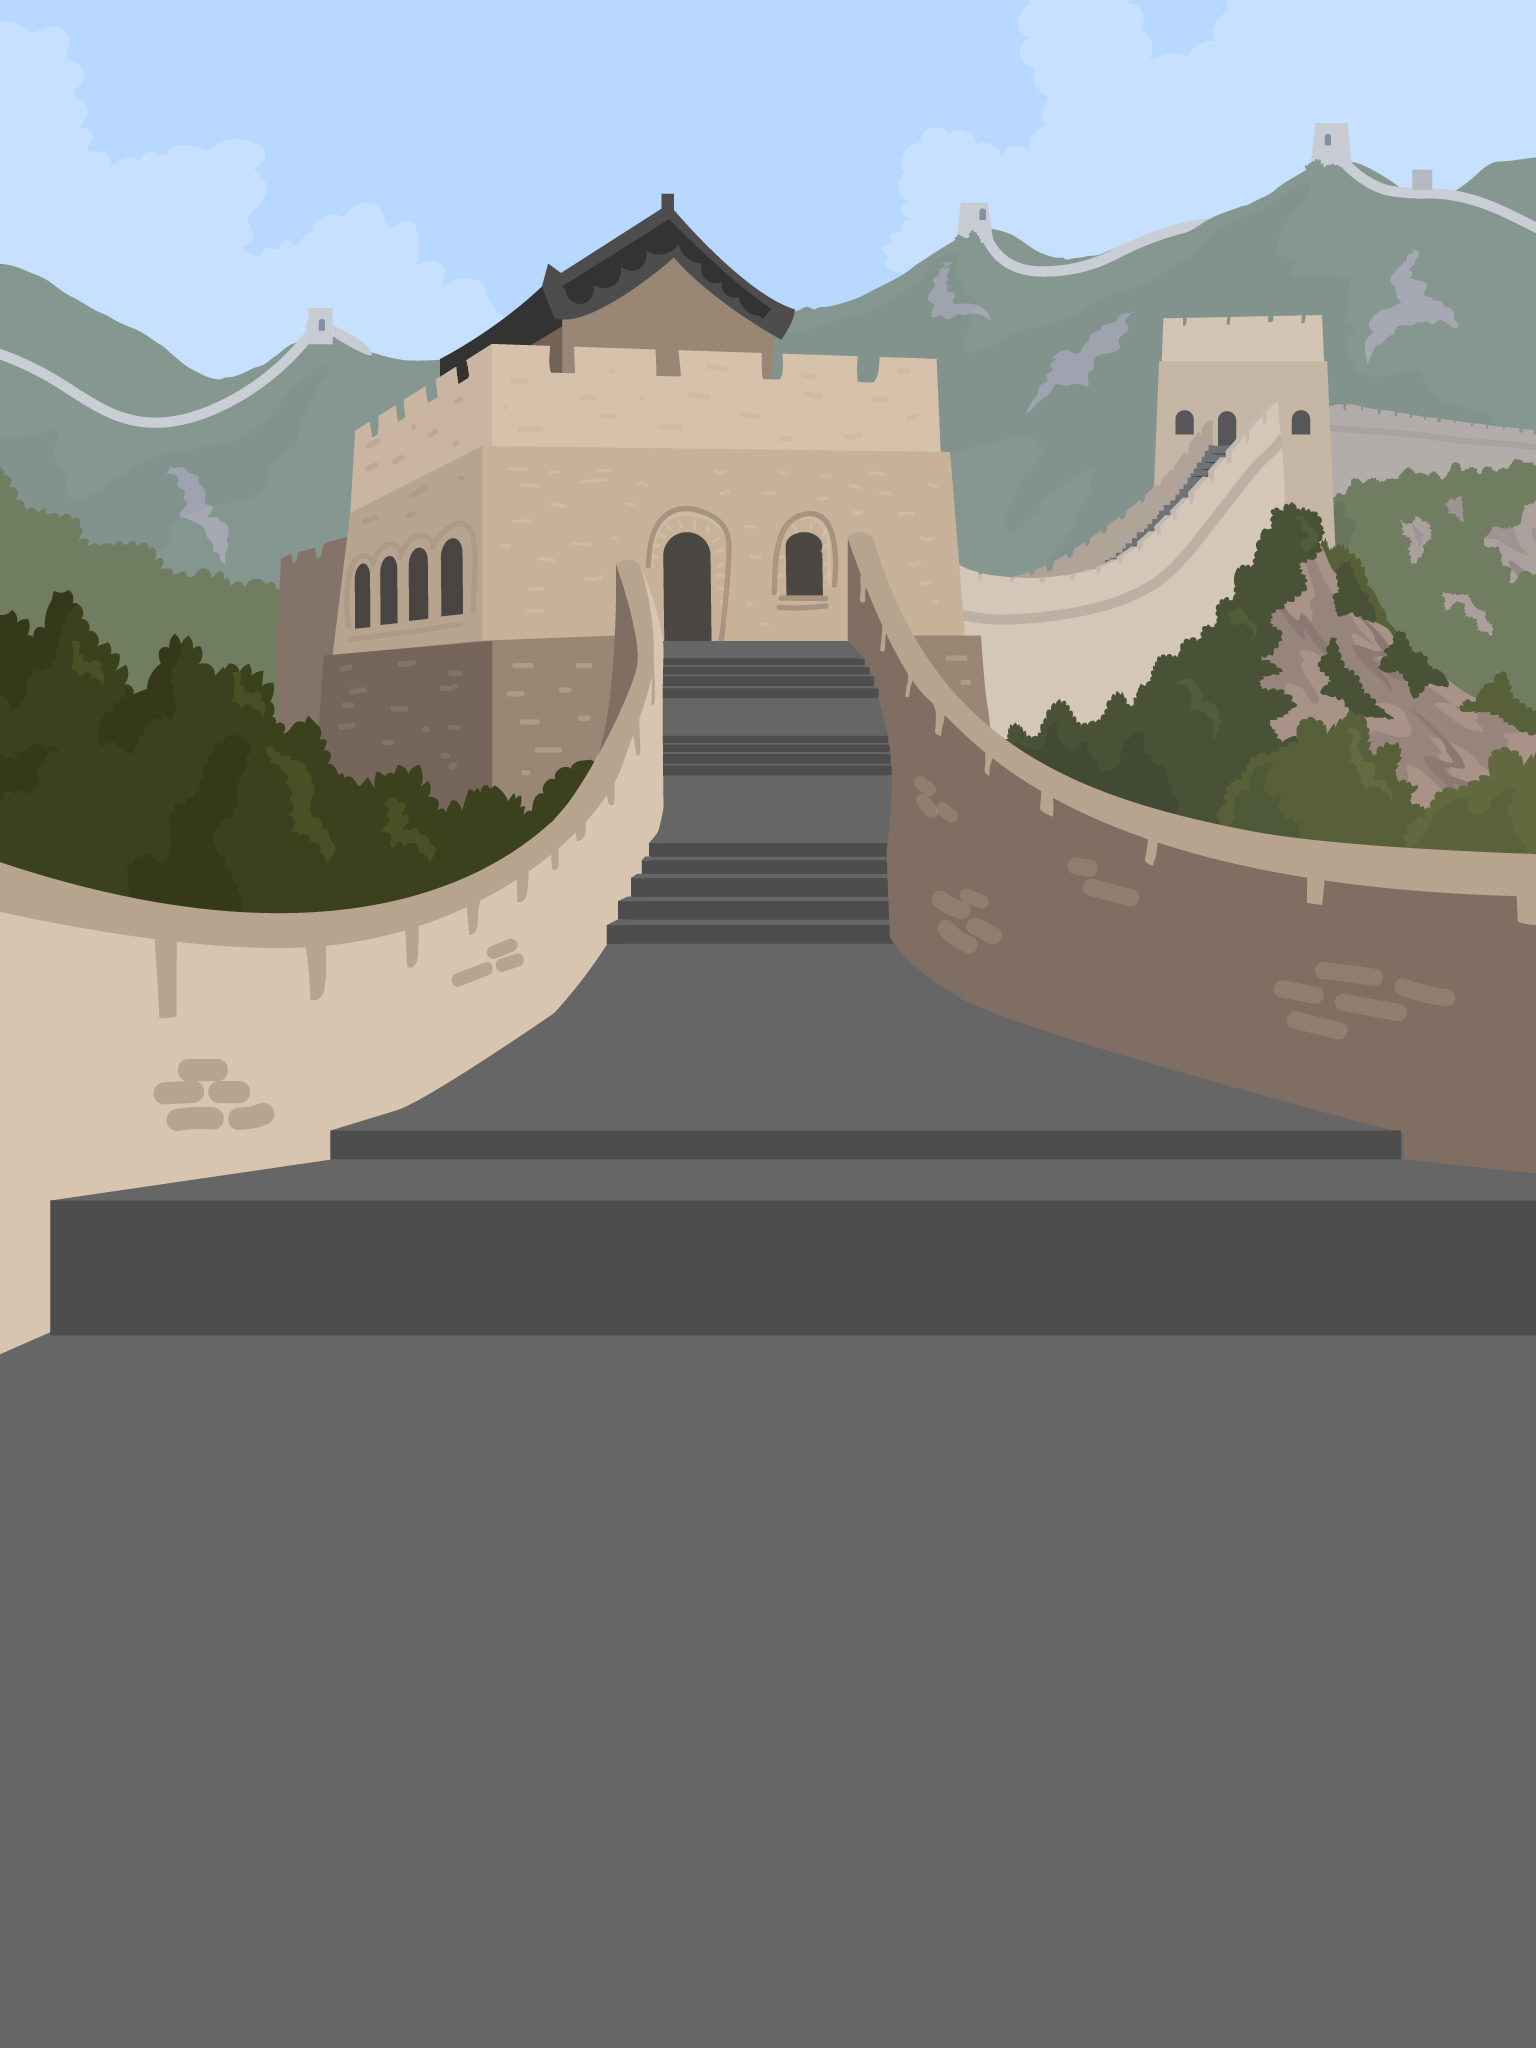 The Great Wall of China - this is a background created for a social app.